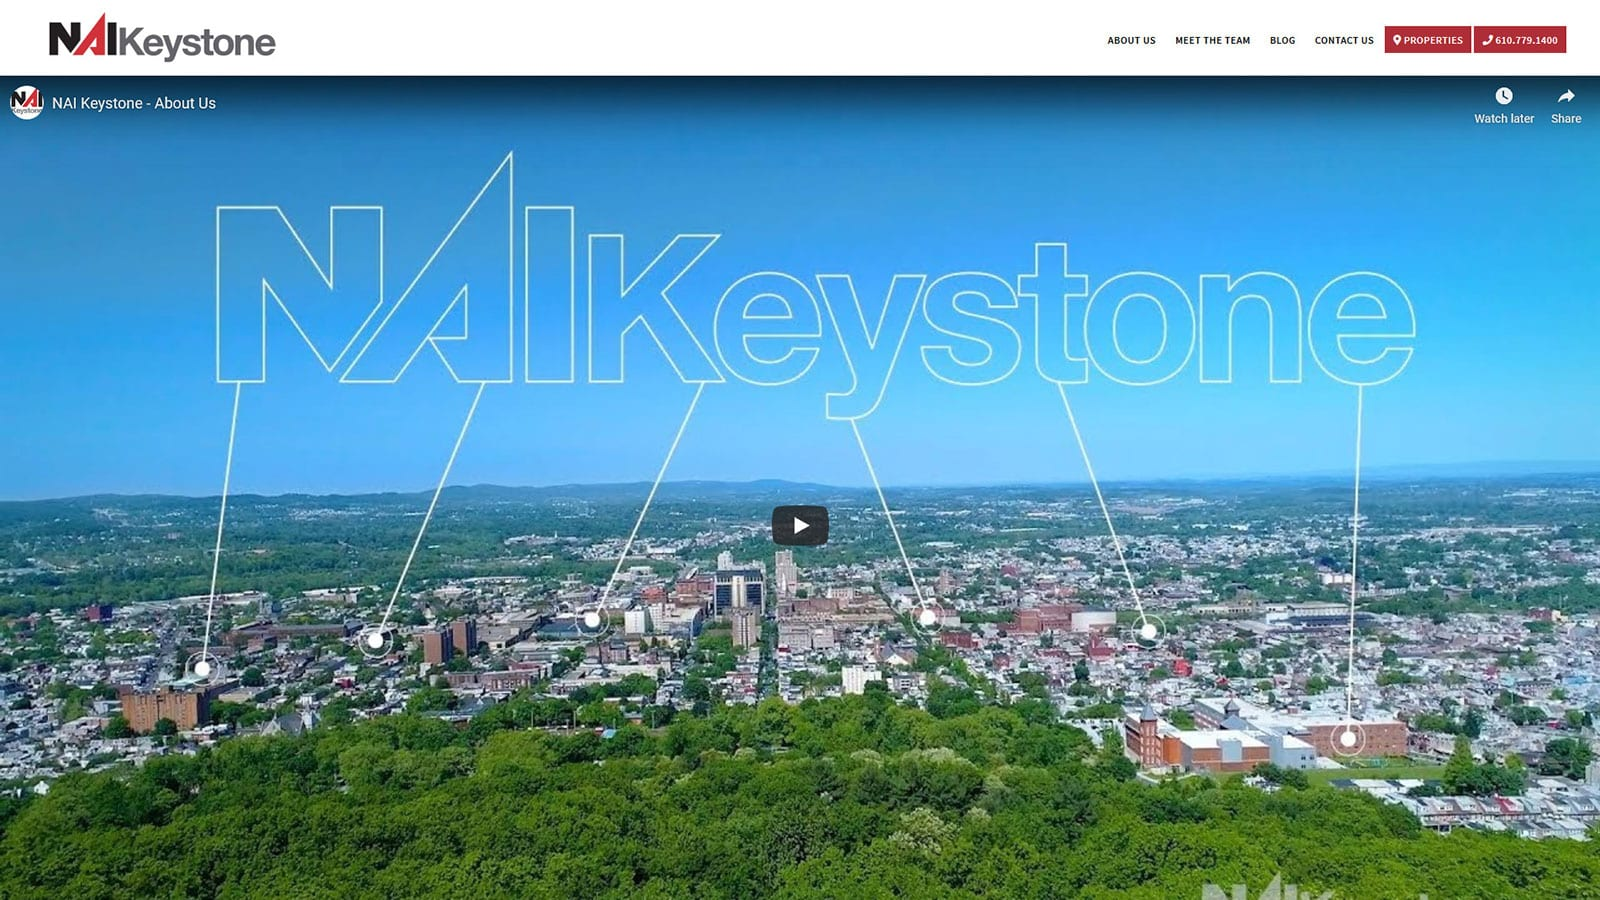 Website Redesign of NAI Keystone of Wyomissing, PA 19611